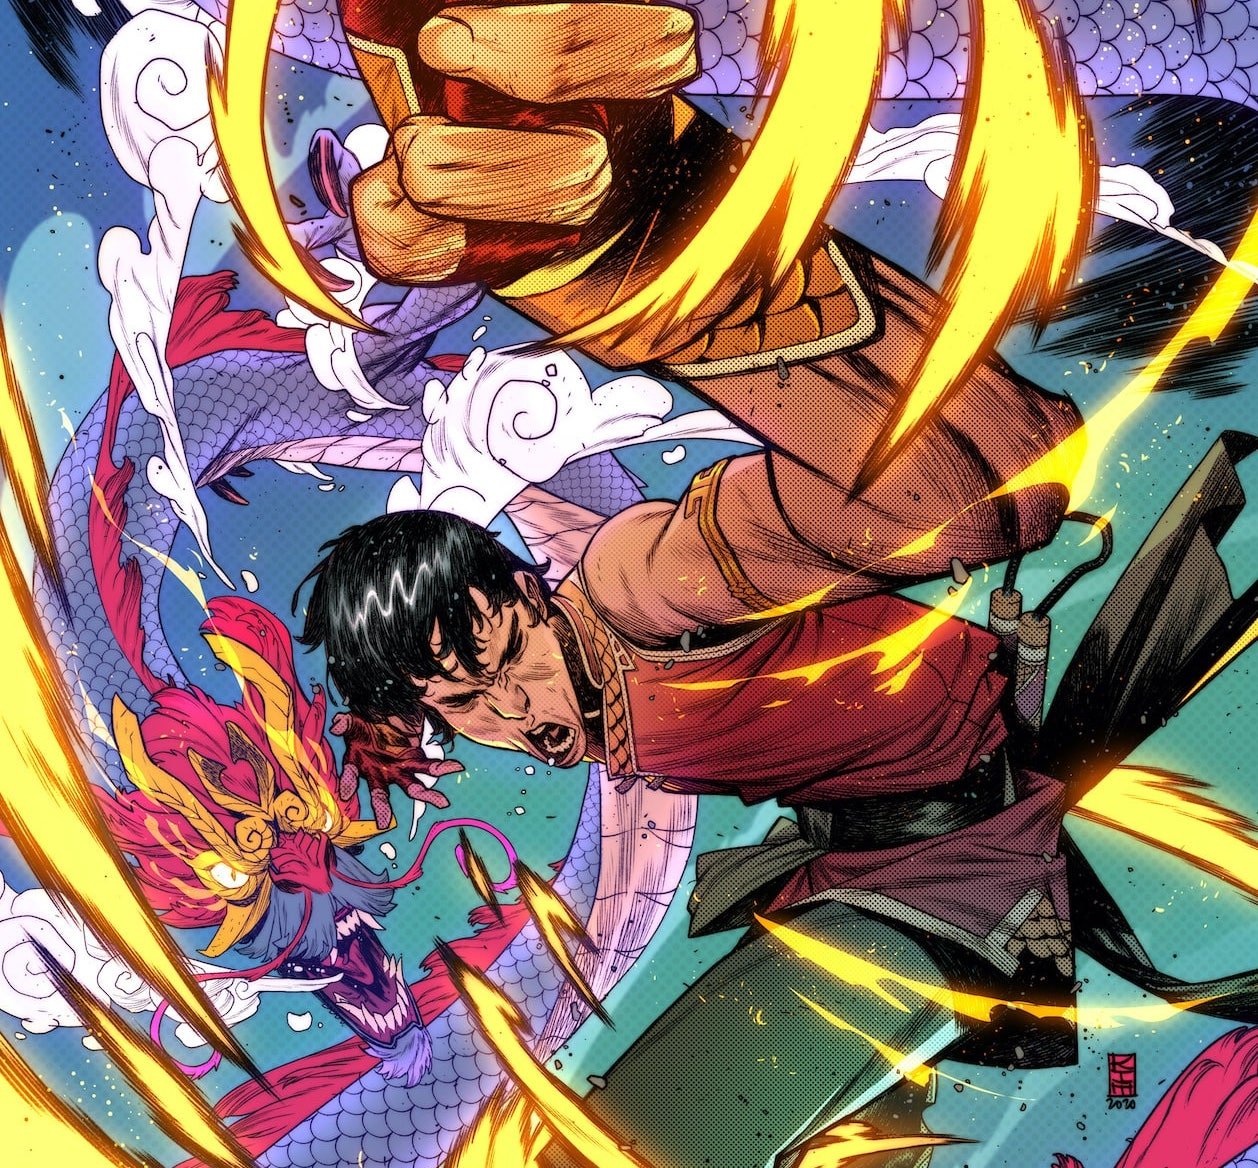 Check out this electrifying Shang-Chi variant cover.